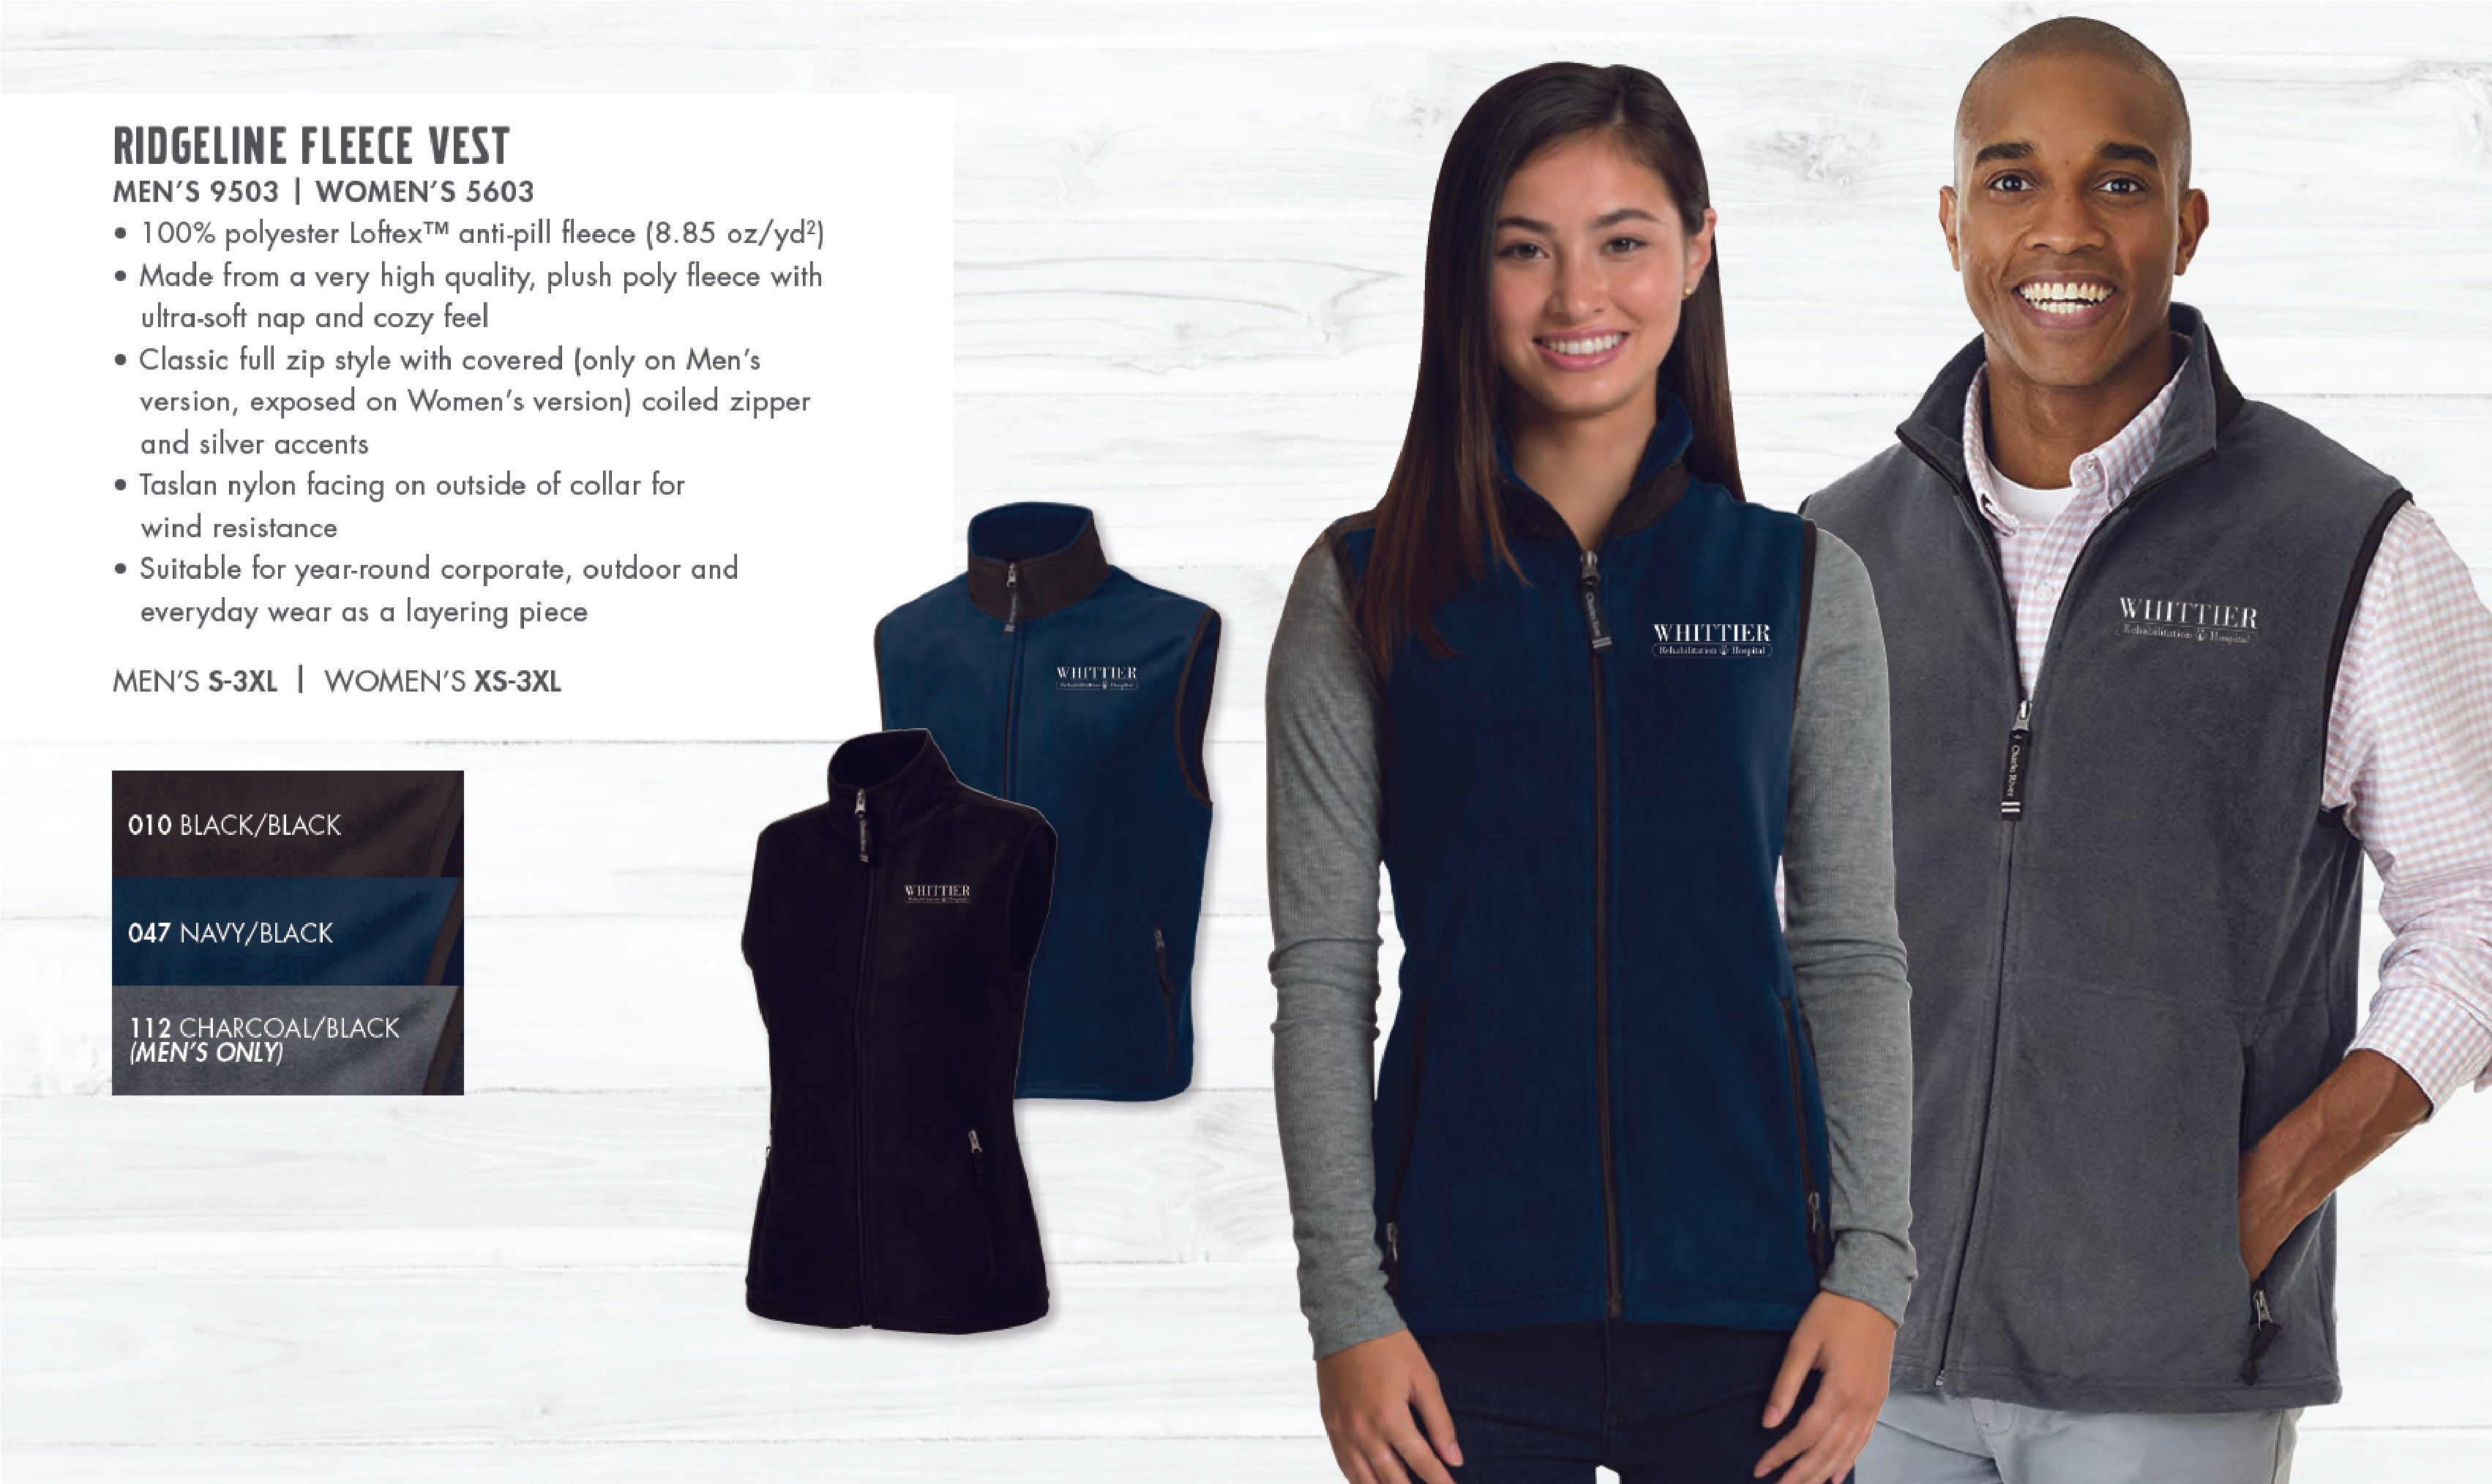 Whittier Women's Ridgeline Fleece Vest